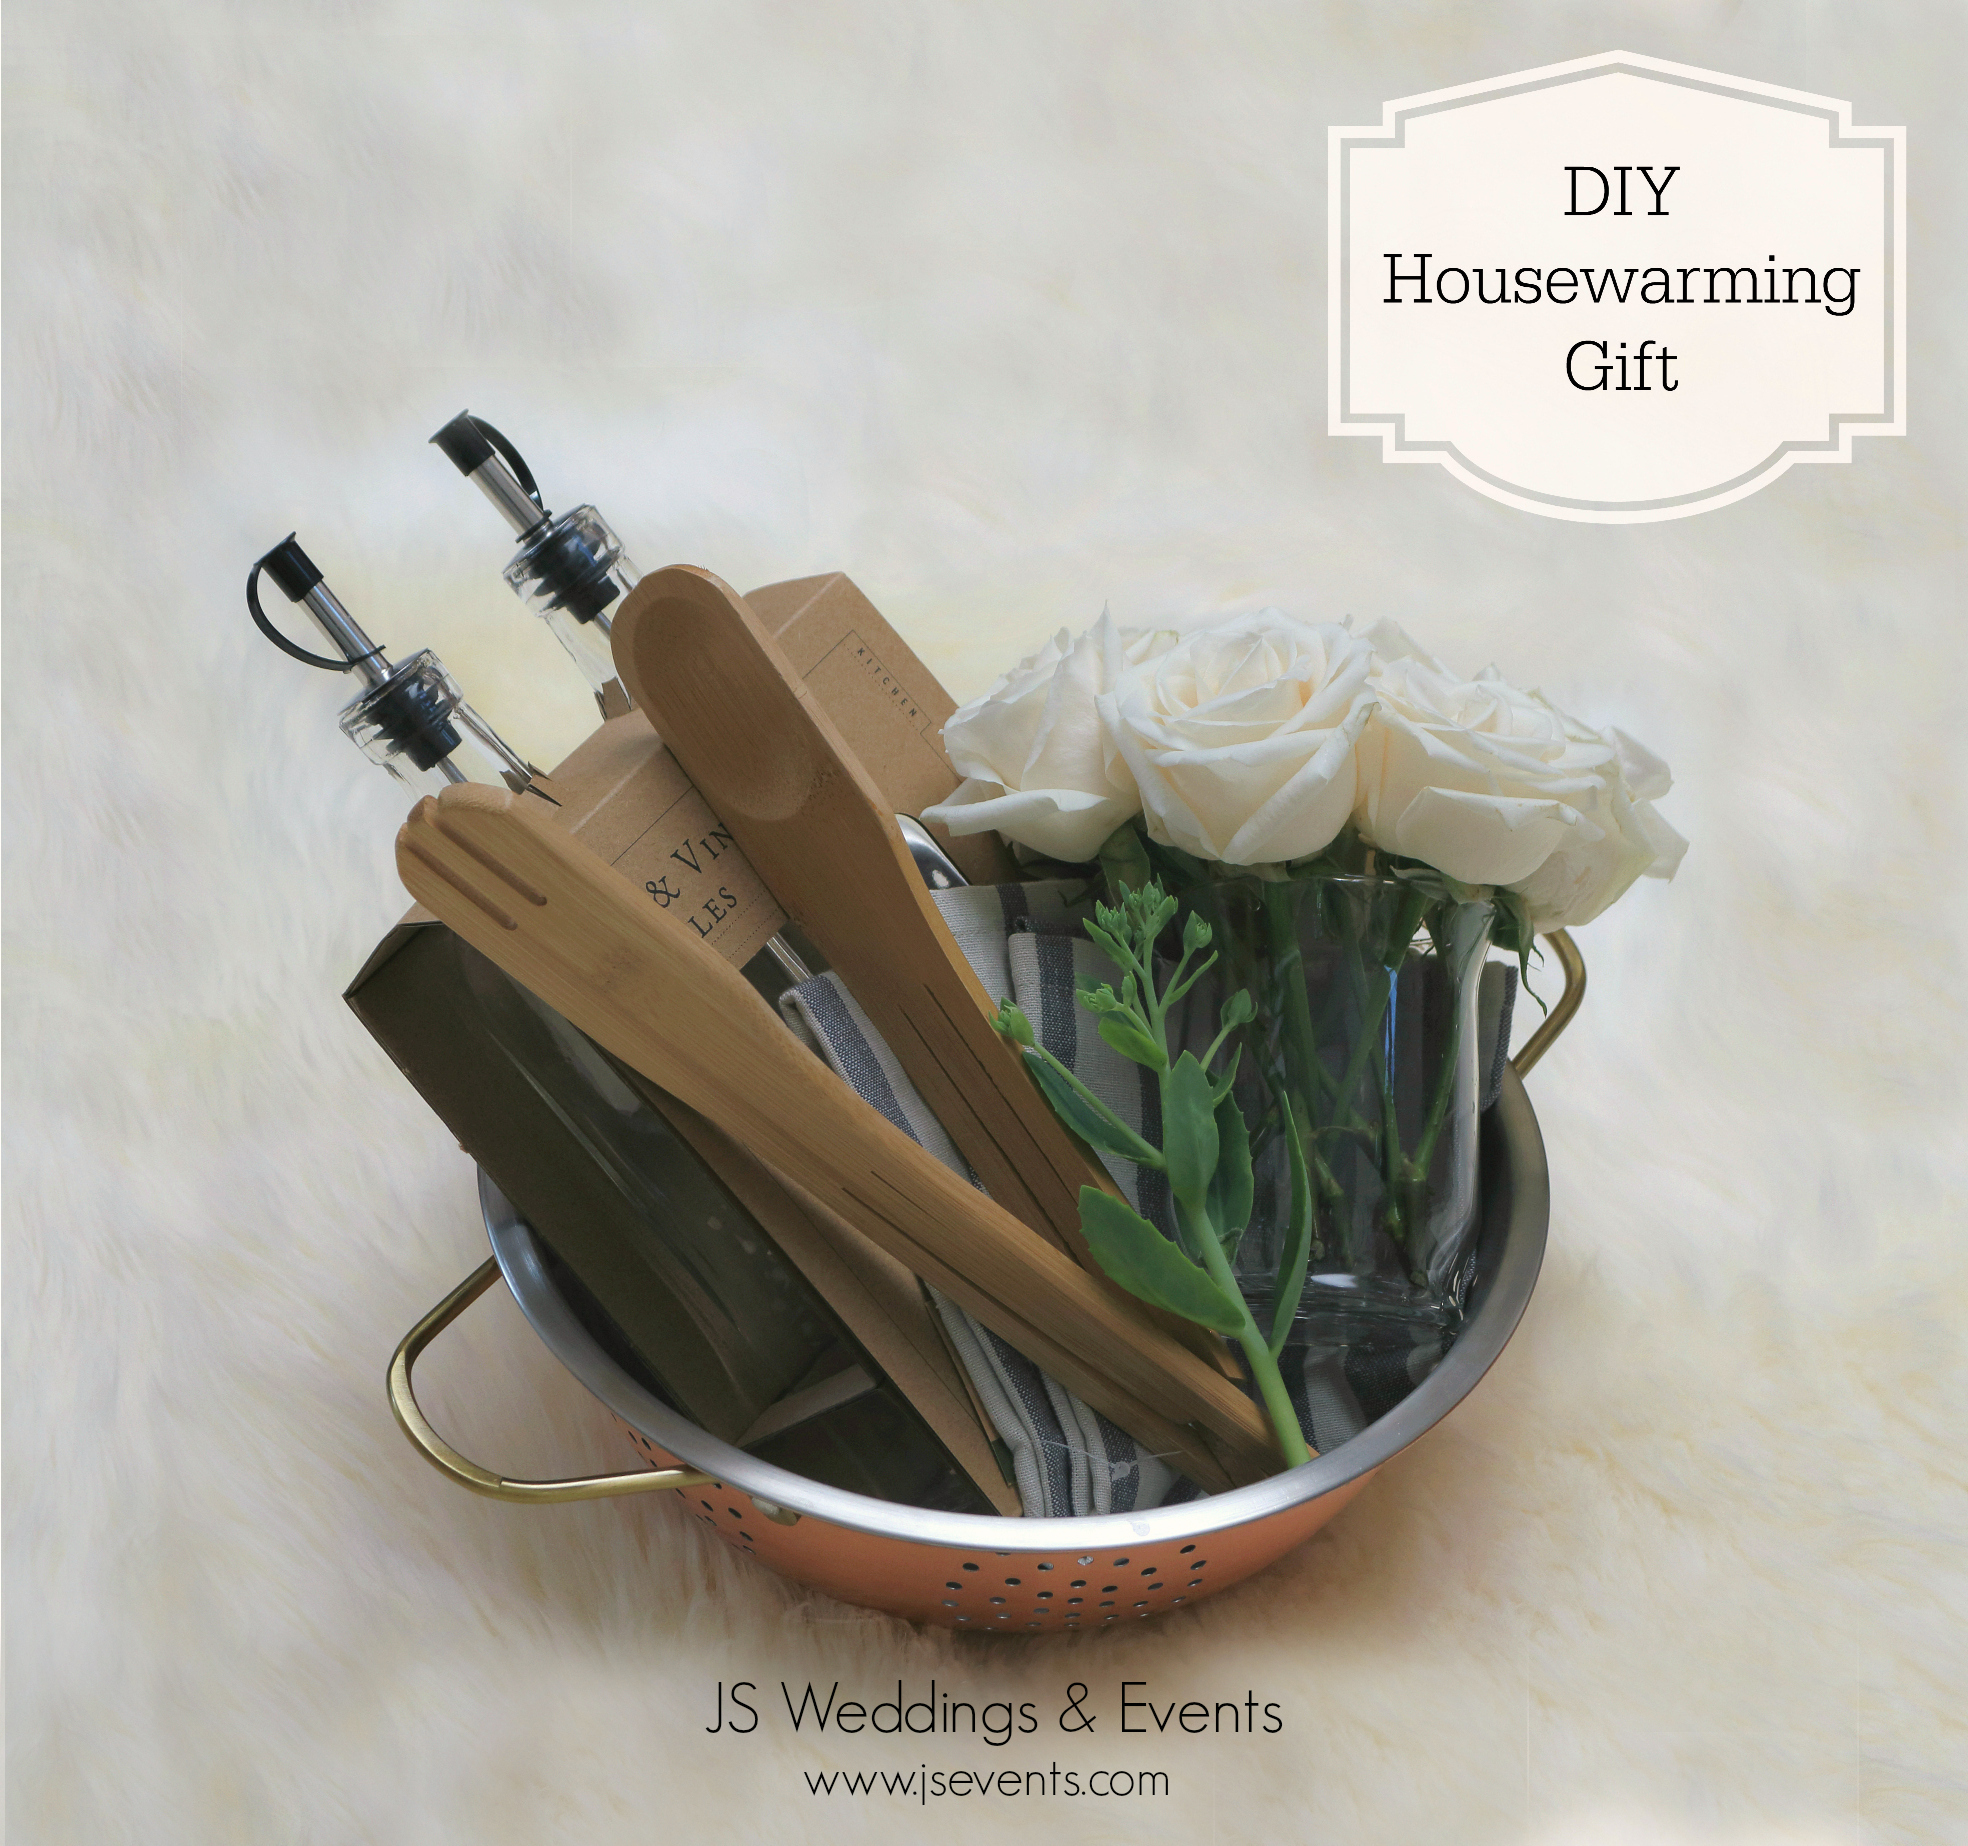 JS Weddings and Events, Grand Rapids Wedding Planner and Floral Designer - DIY Housewarming Gift, Newlywed Wedding Gift